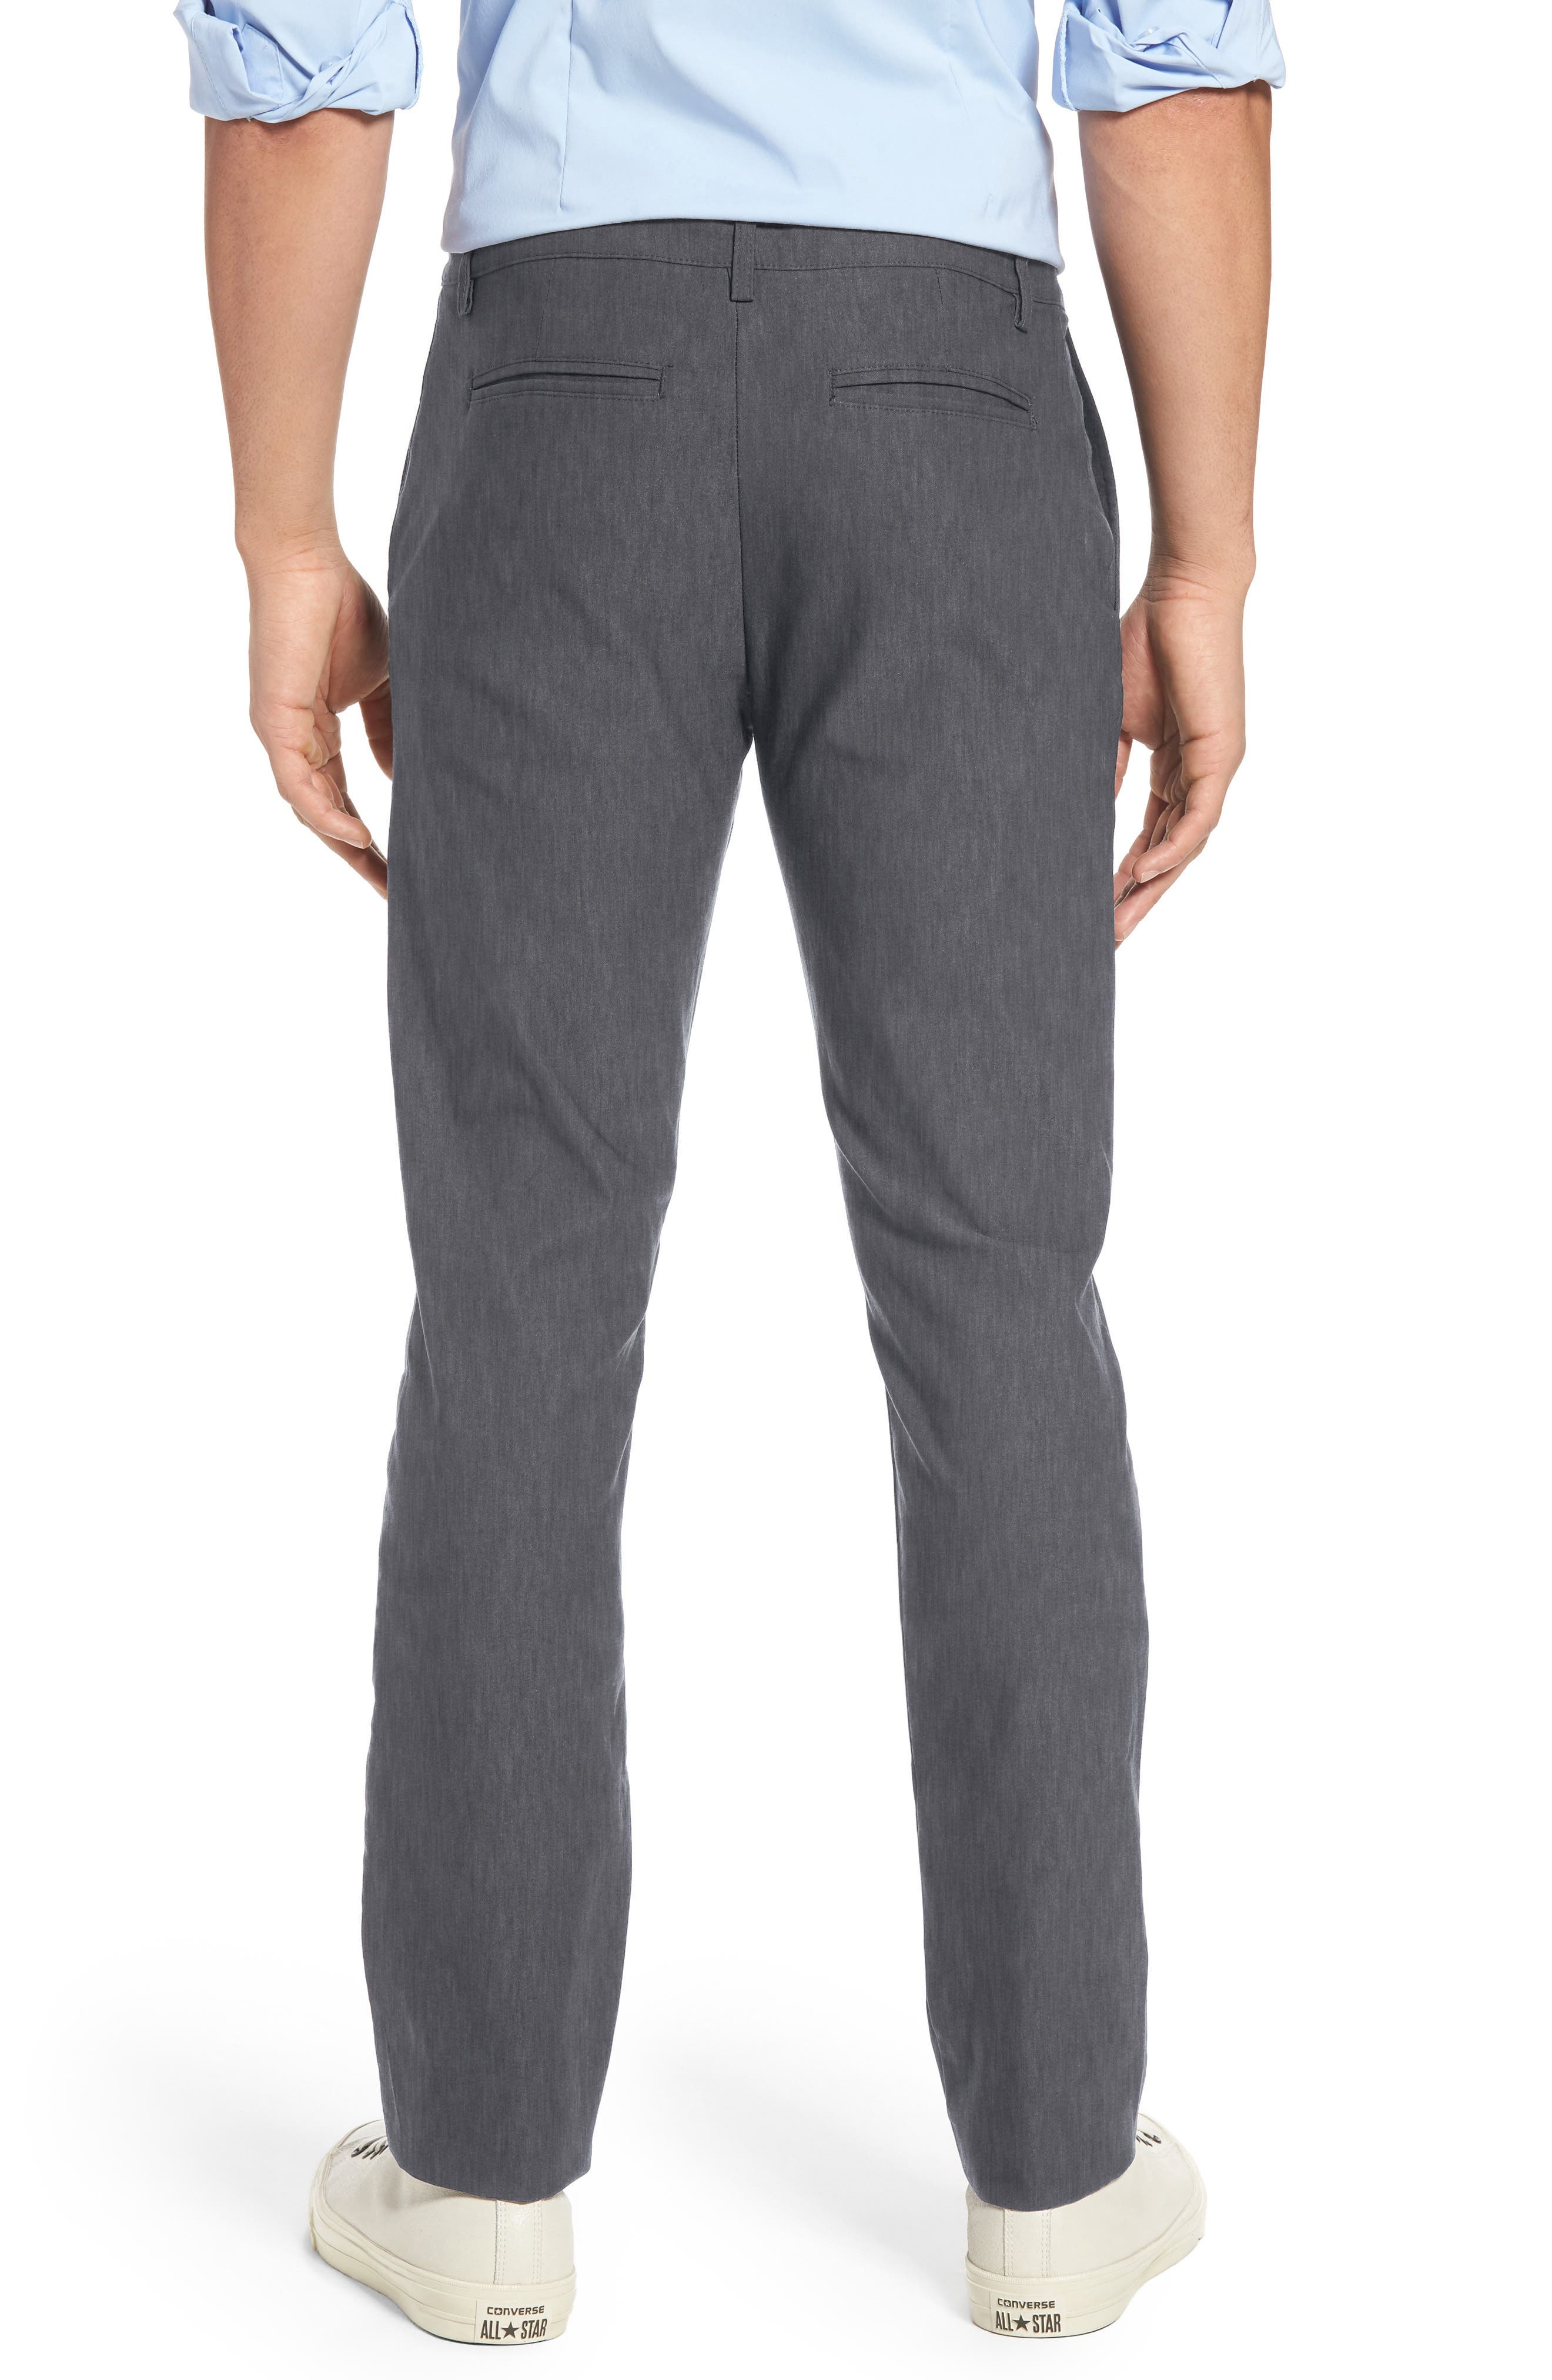 Vice President Trim Fit Performance Chinos,                             Alternate thumbnail 2, color,                             Grey